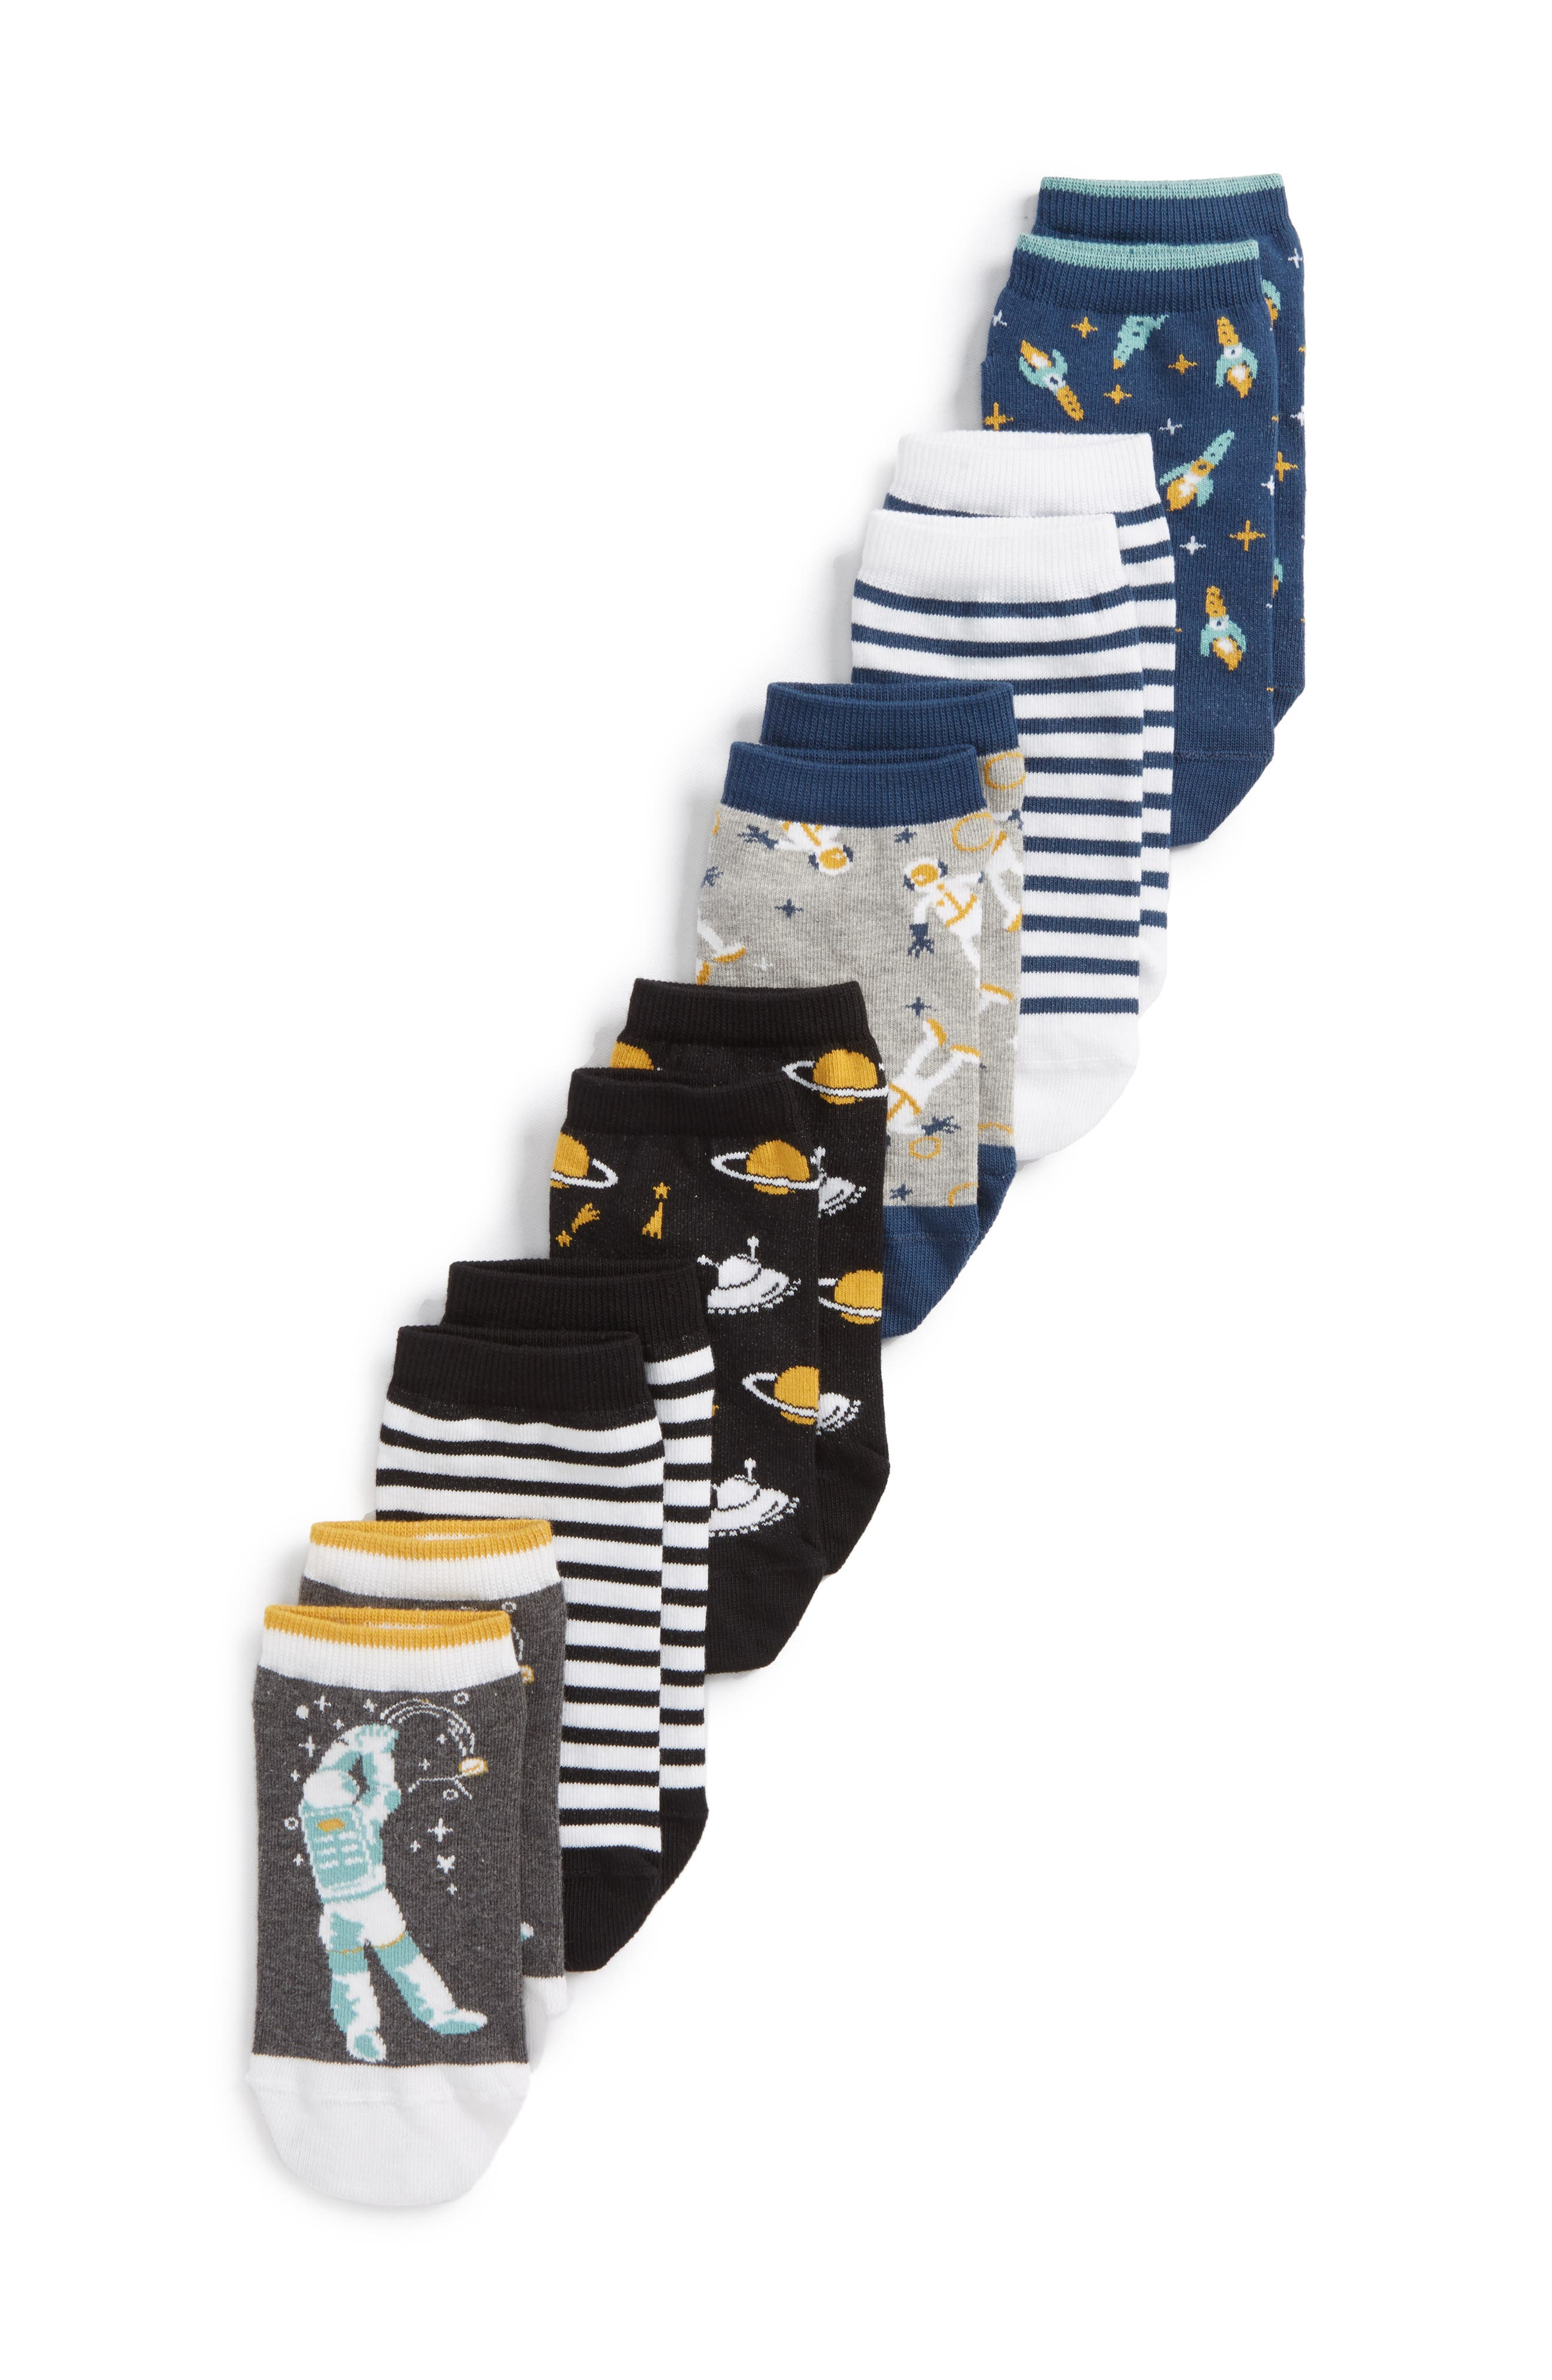 Space 6-Pack Ankle Socks,                             Main thumbnail 1, color,                             020